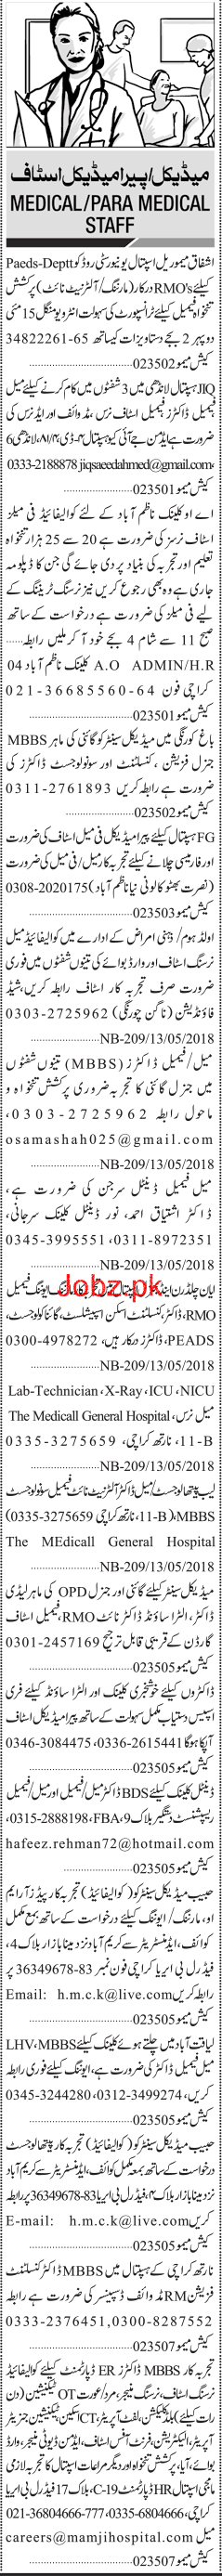 Resident Medical Officers RMO, Female Staff Nurses Wanted